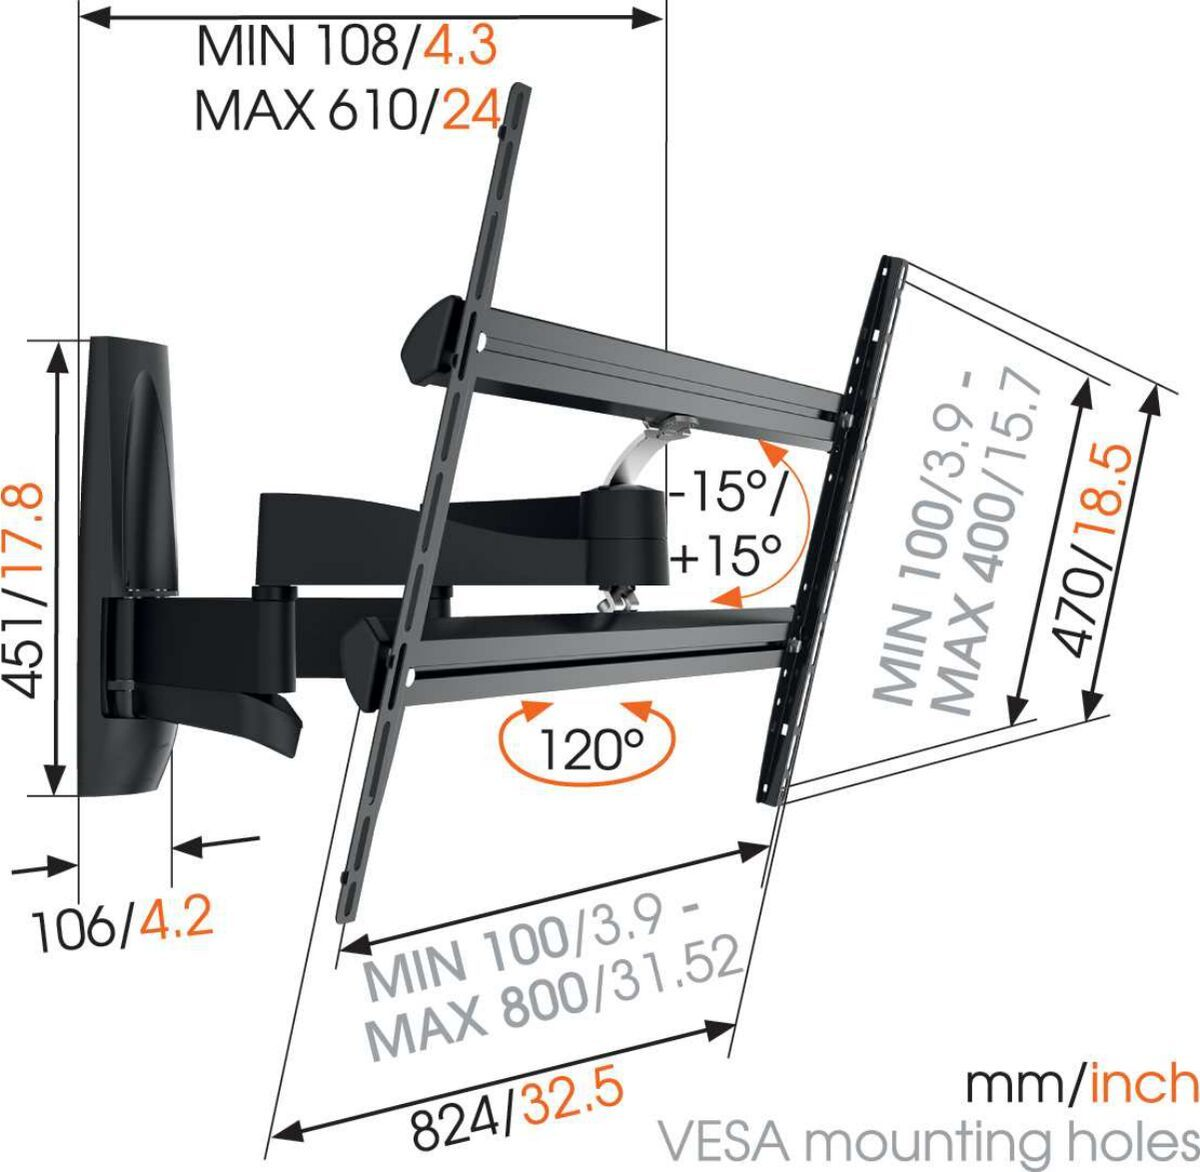 Vogel's WALL 3450 Full-Motion TV Wall Mount - Suitable for 55 up to 100 inch TVs - Forward and turning motion (up to 120°) - Tilt up to 15° - Dimensions